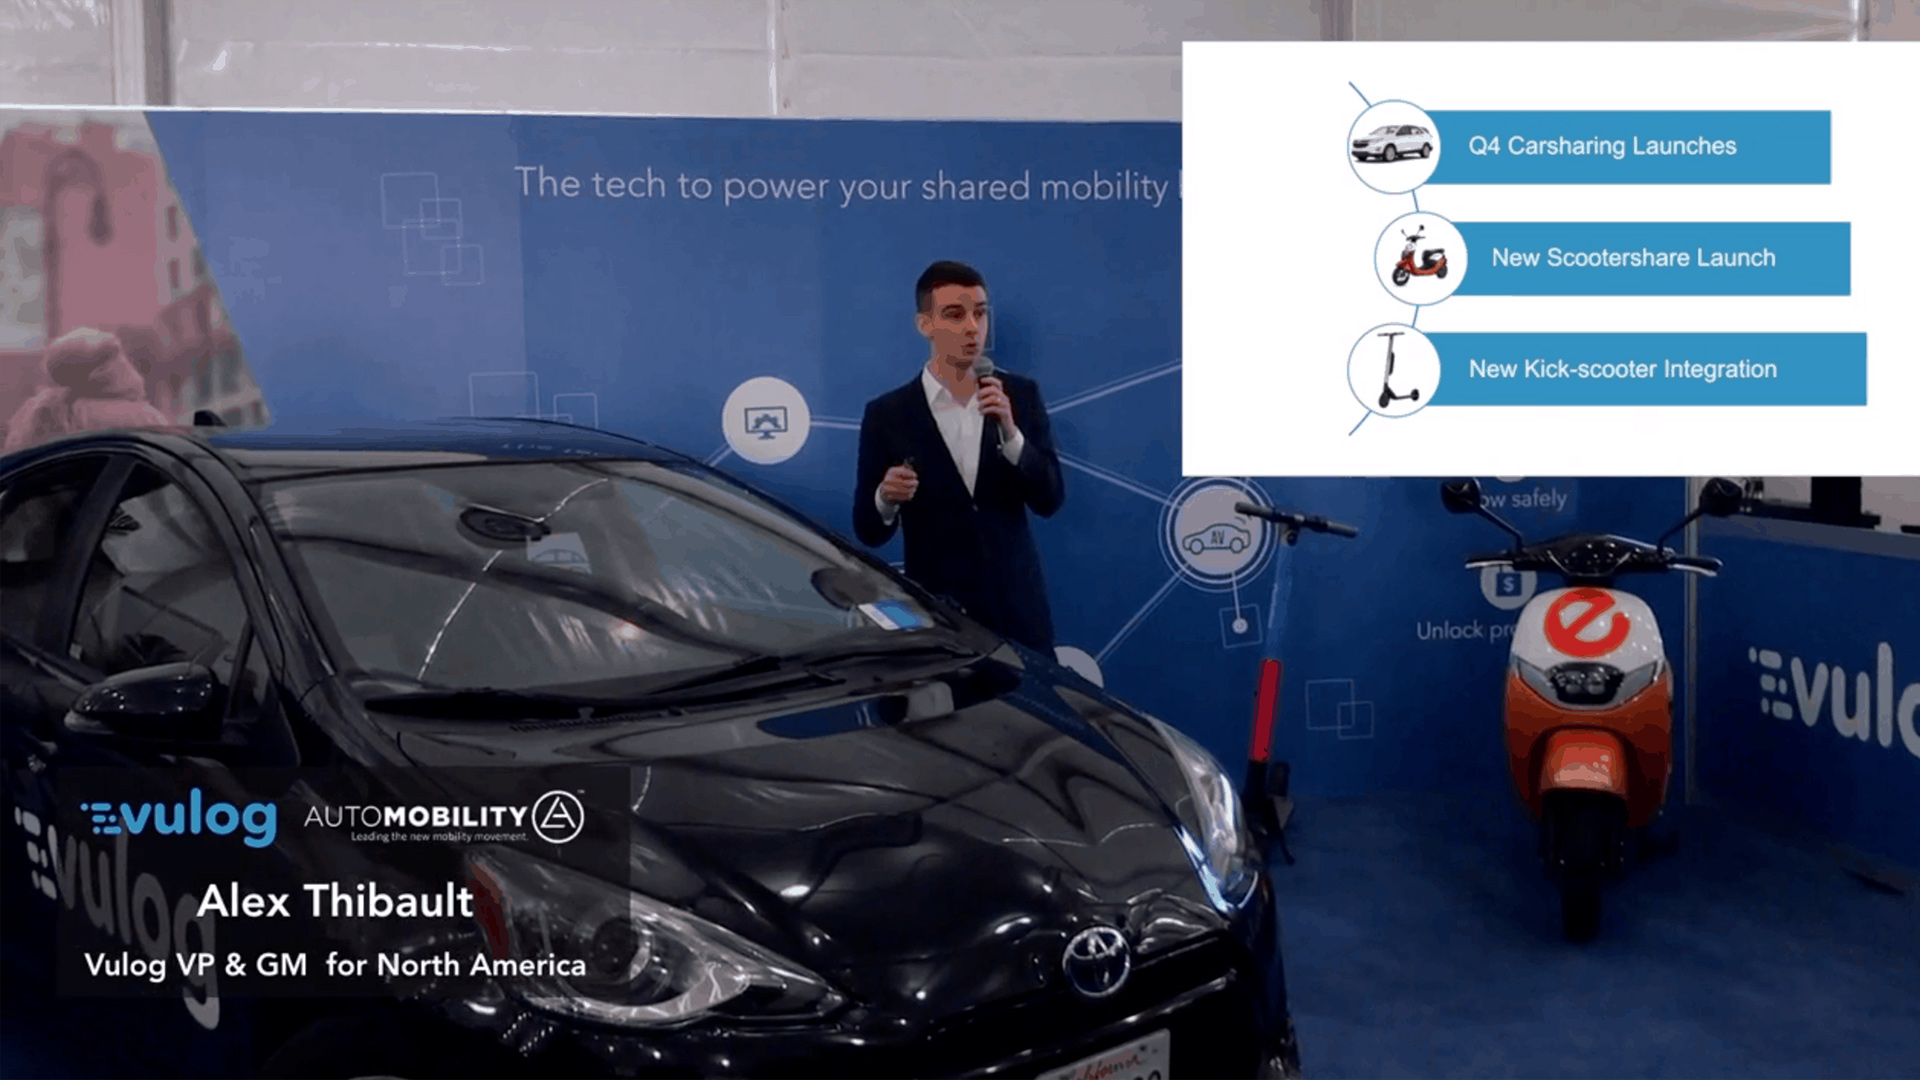 Alex Thibault Announces Vulog's Q4 Expansion Plans at Automobility LA 2018